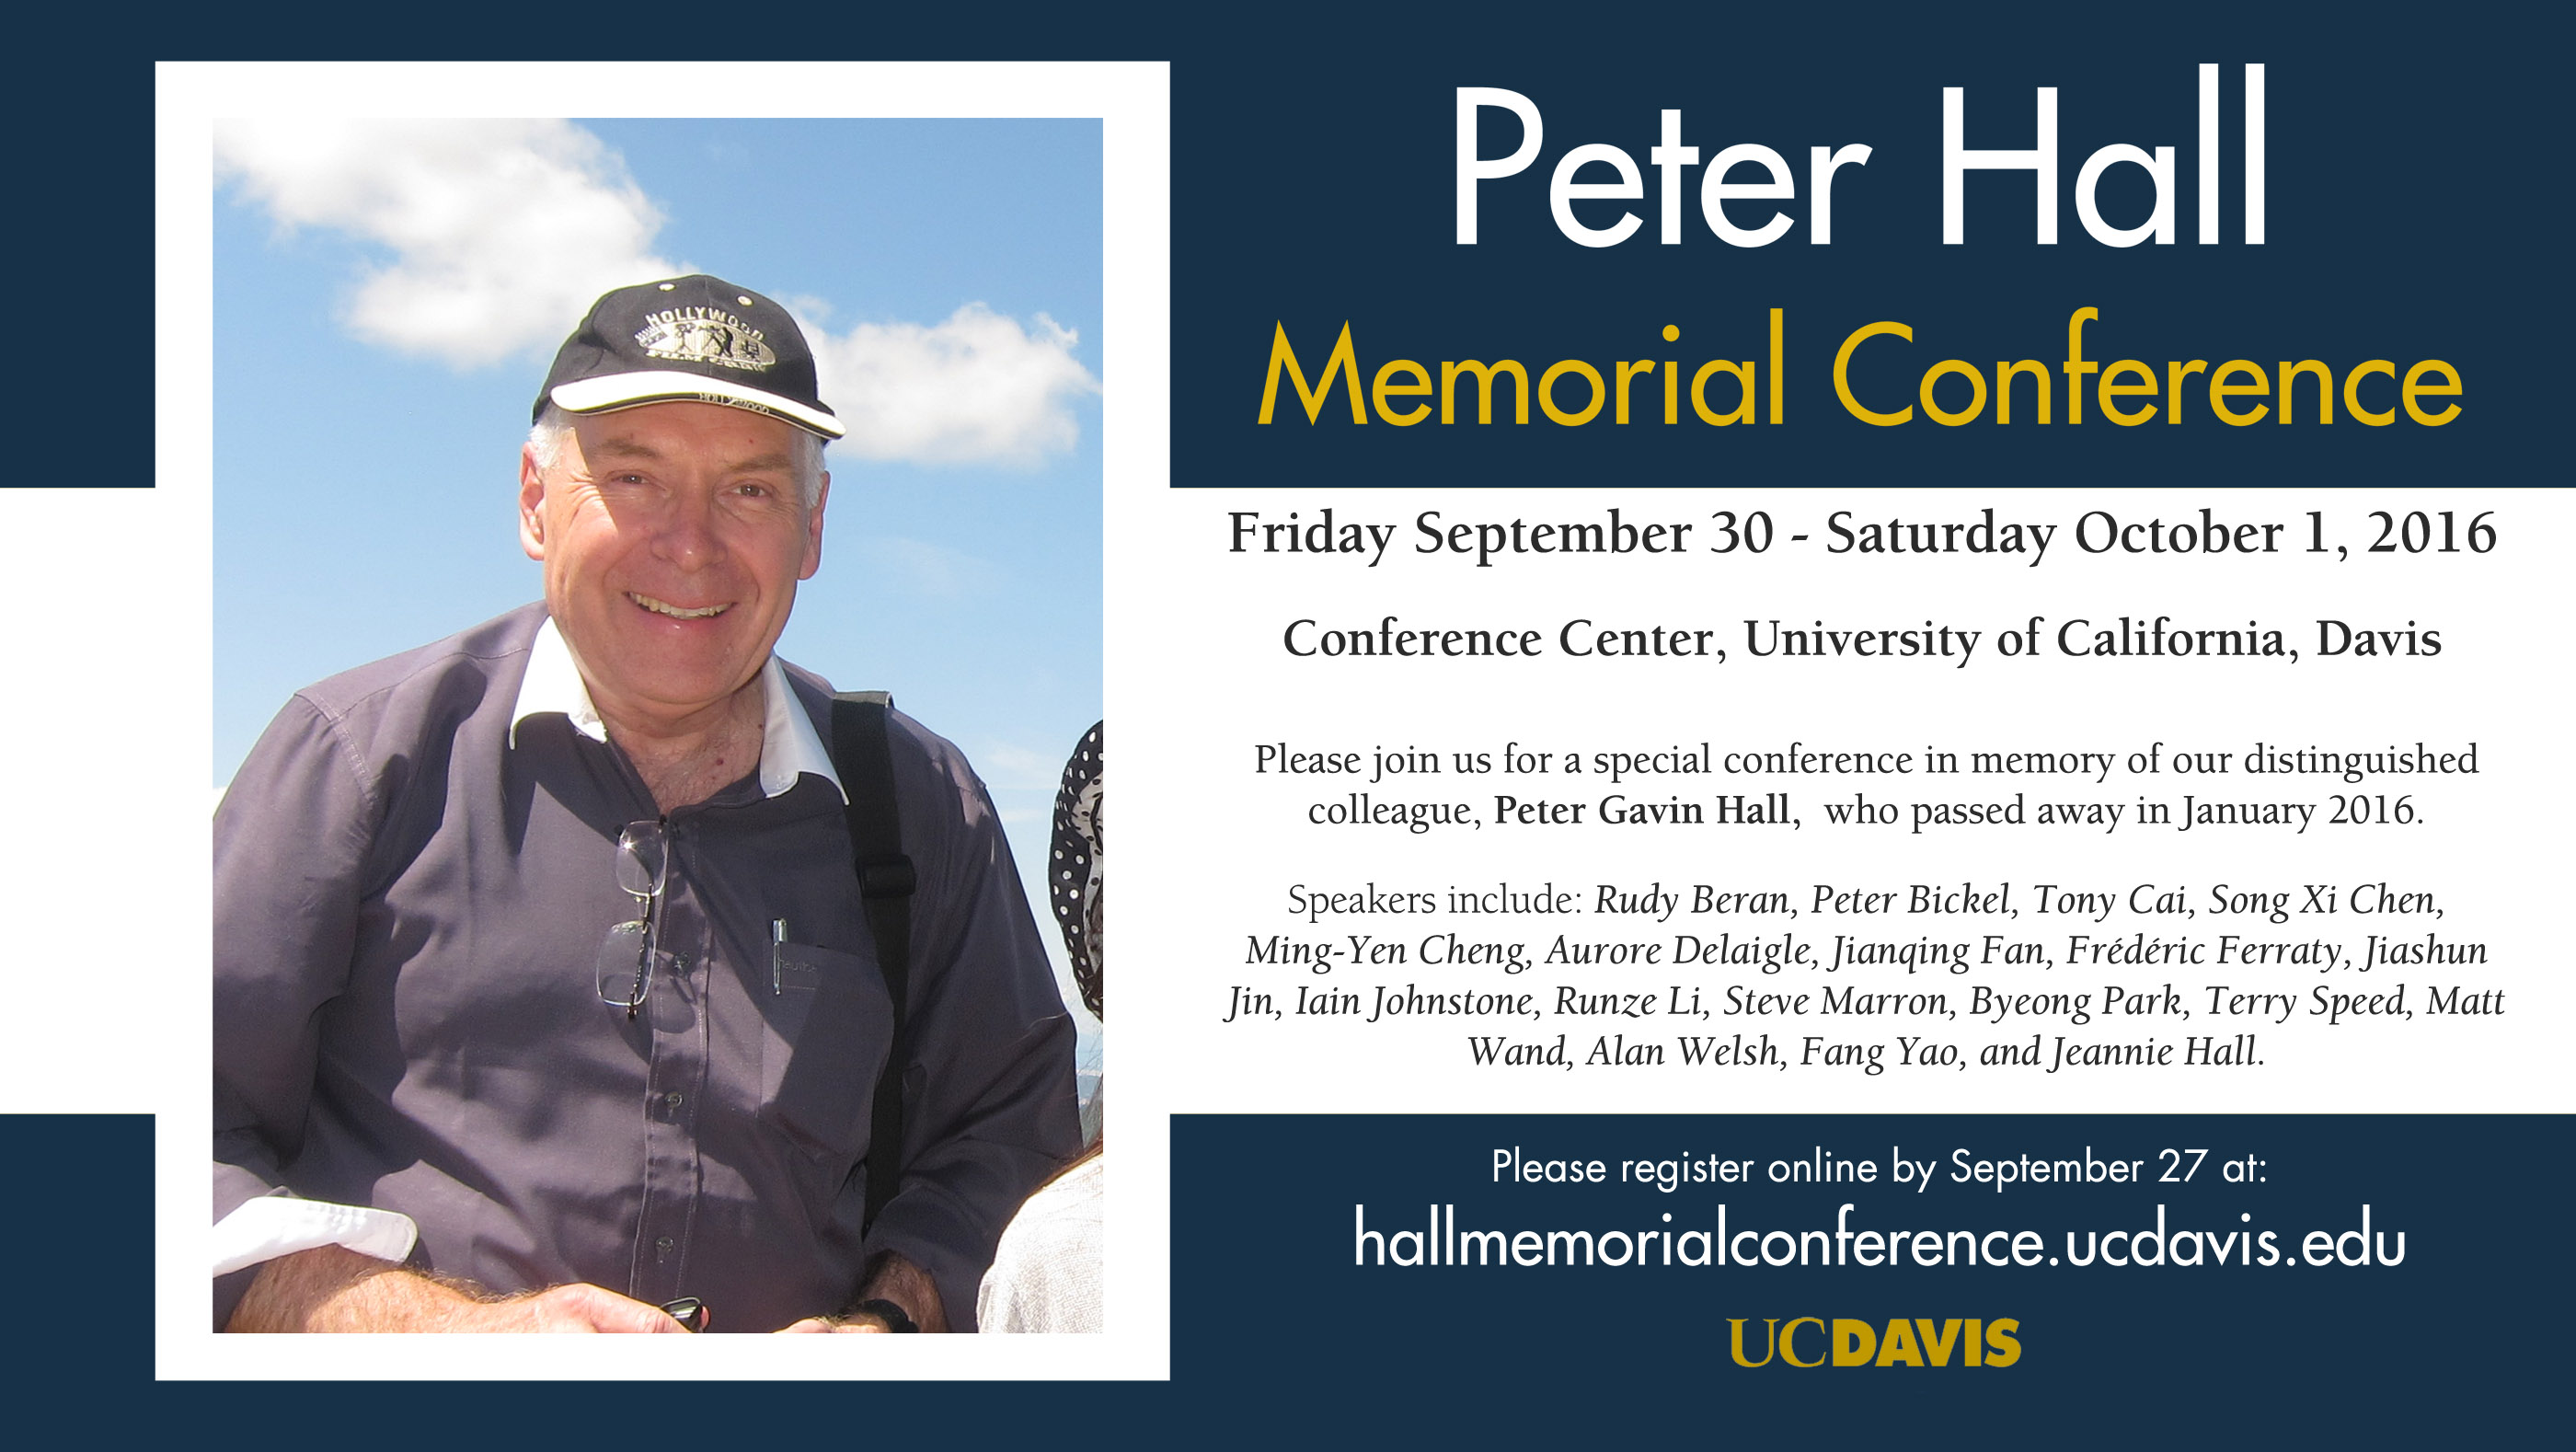 Peter Hall Memorial Conference